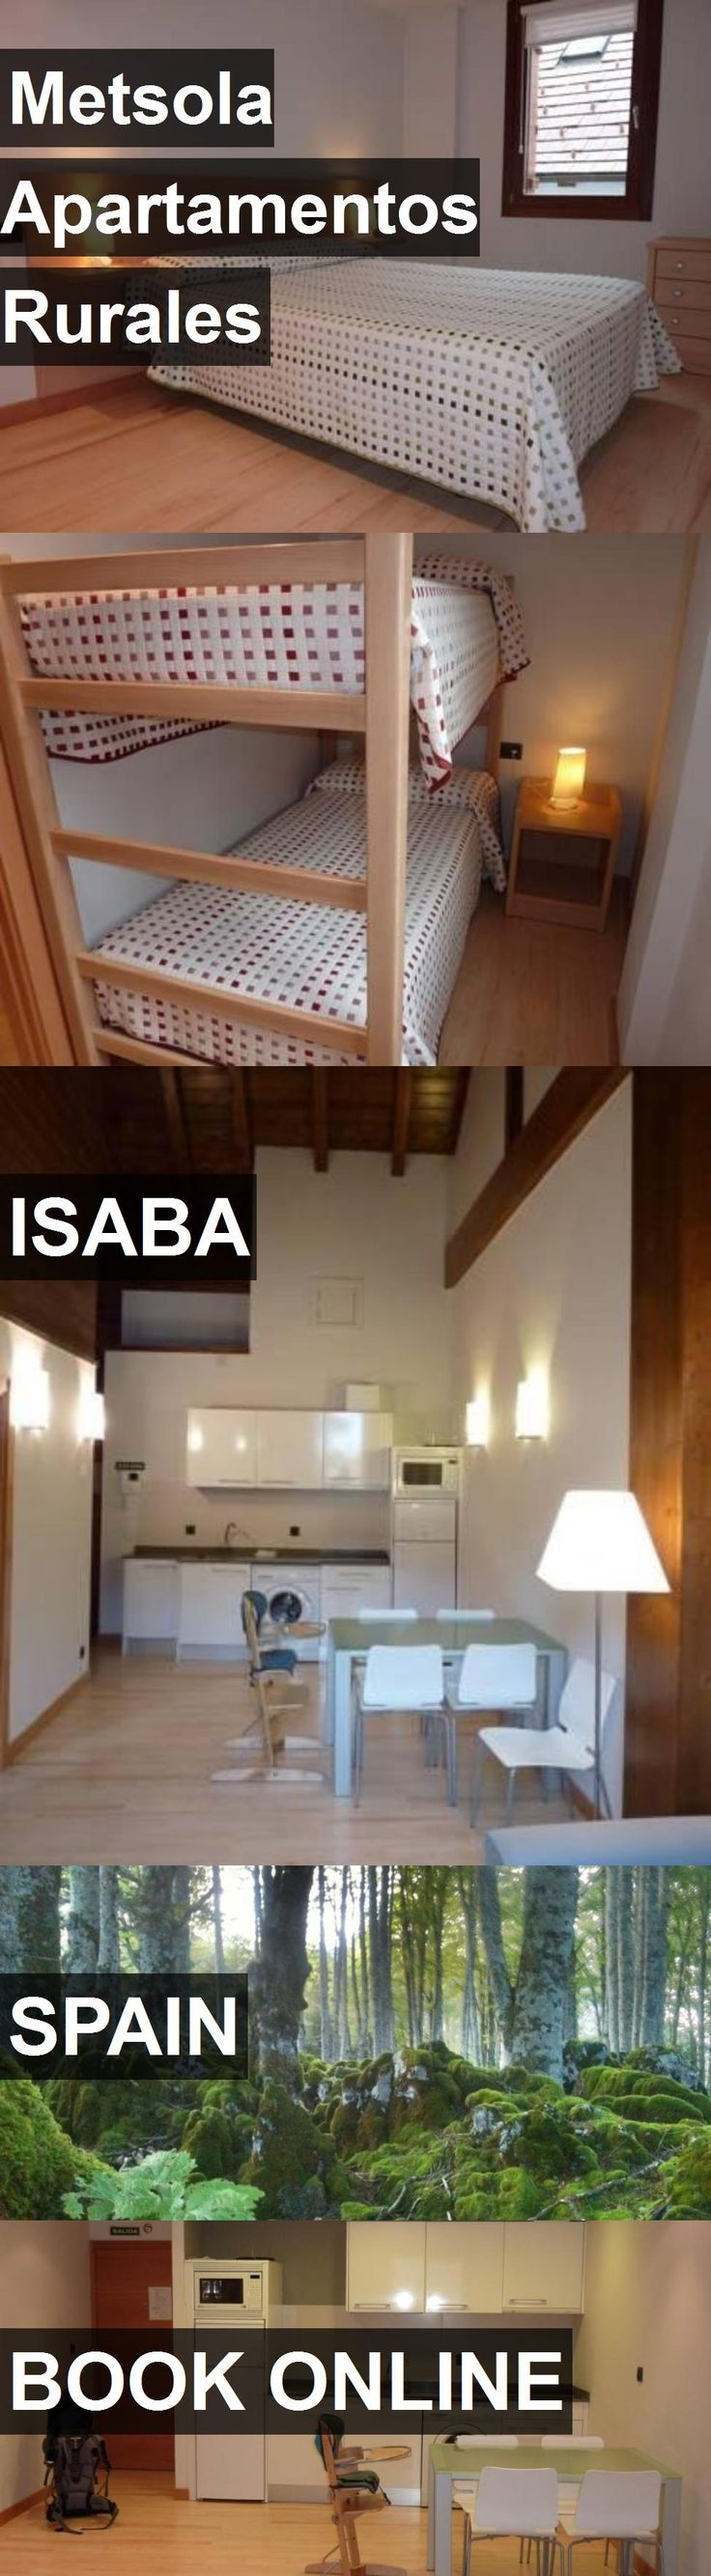 Hotel Metsola Apartamentos Rurales in Isaba, Spain. For more information, photos, reviews and best prices please follow the link. #Spain #Isaba #travel #vacation #hotel